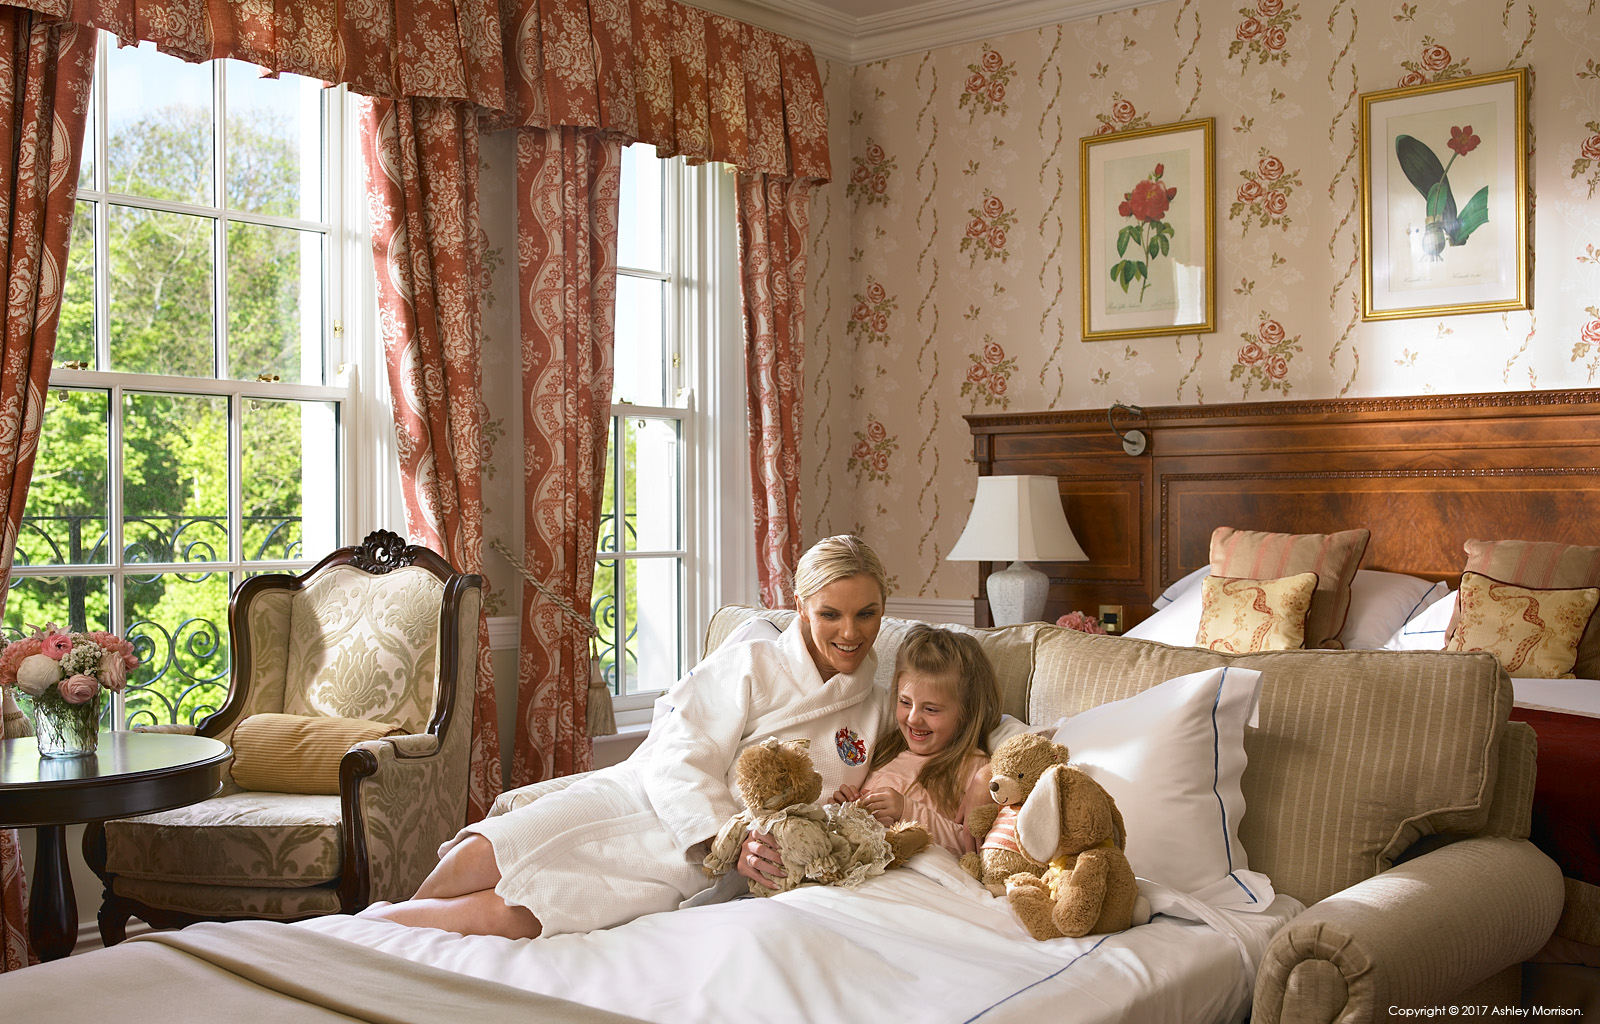 Family Accommodation in the Liffey Deluxe bedroom at the Kildare Hotel Spa & Country Club in County Kildare.